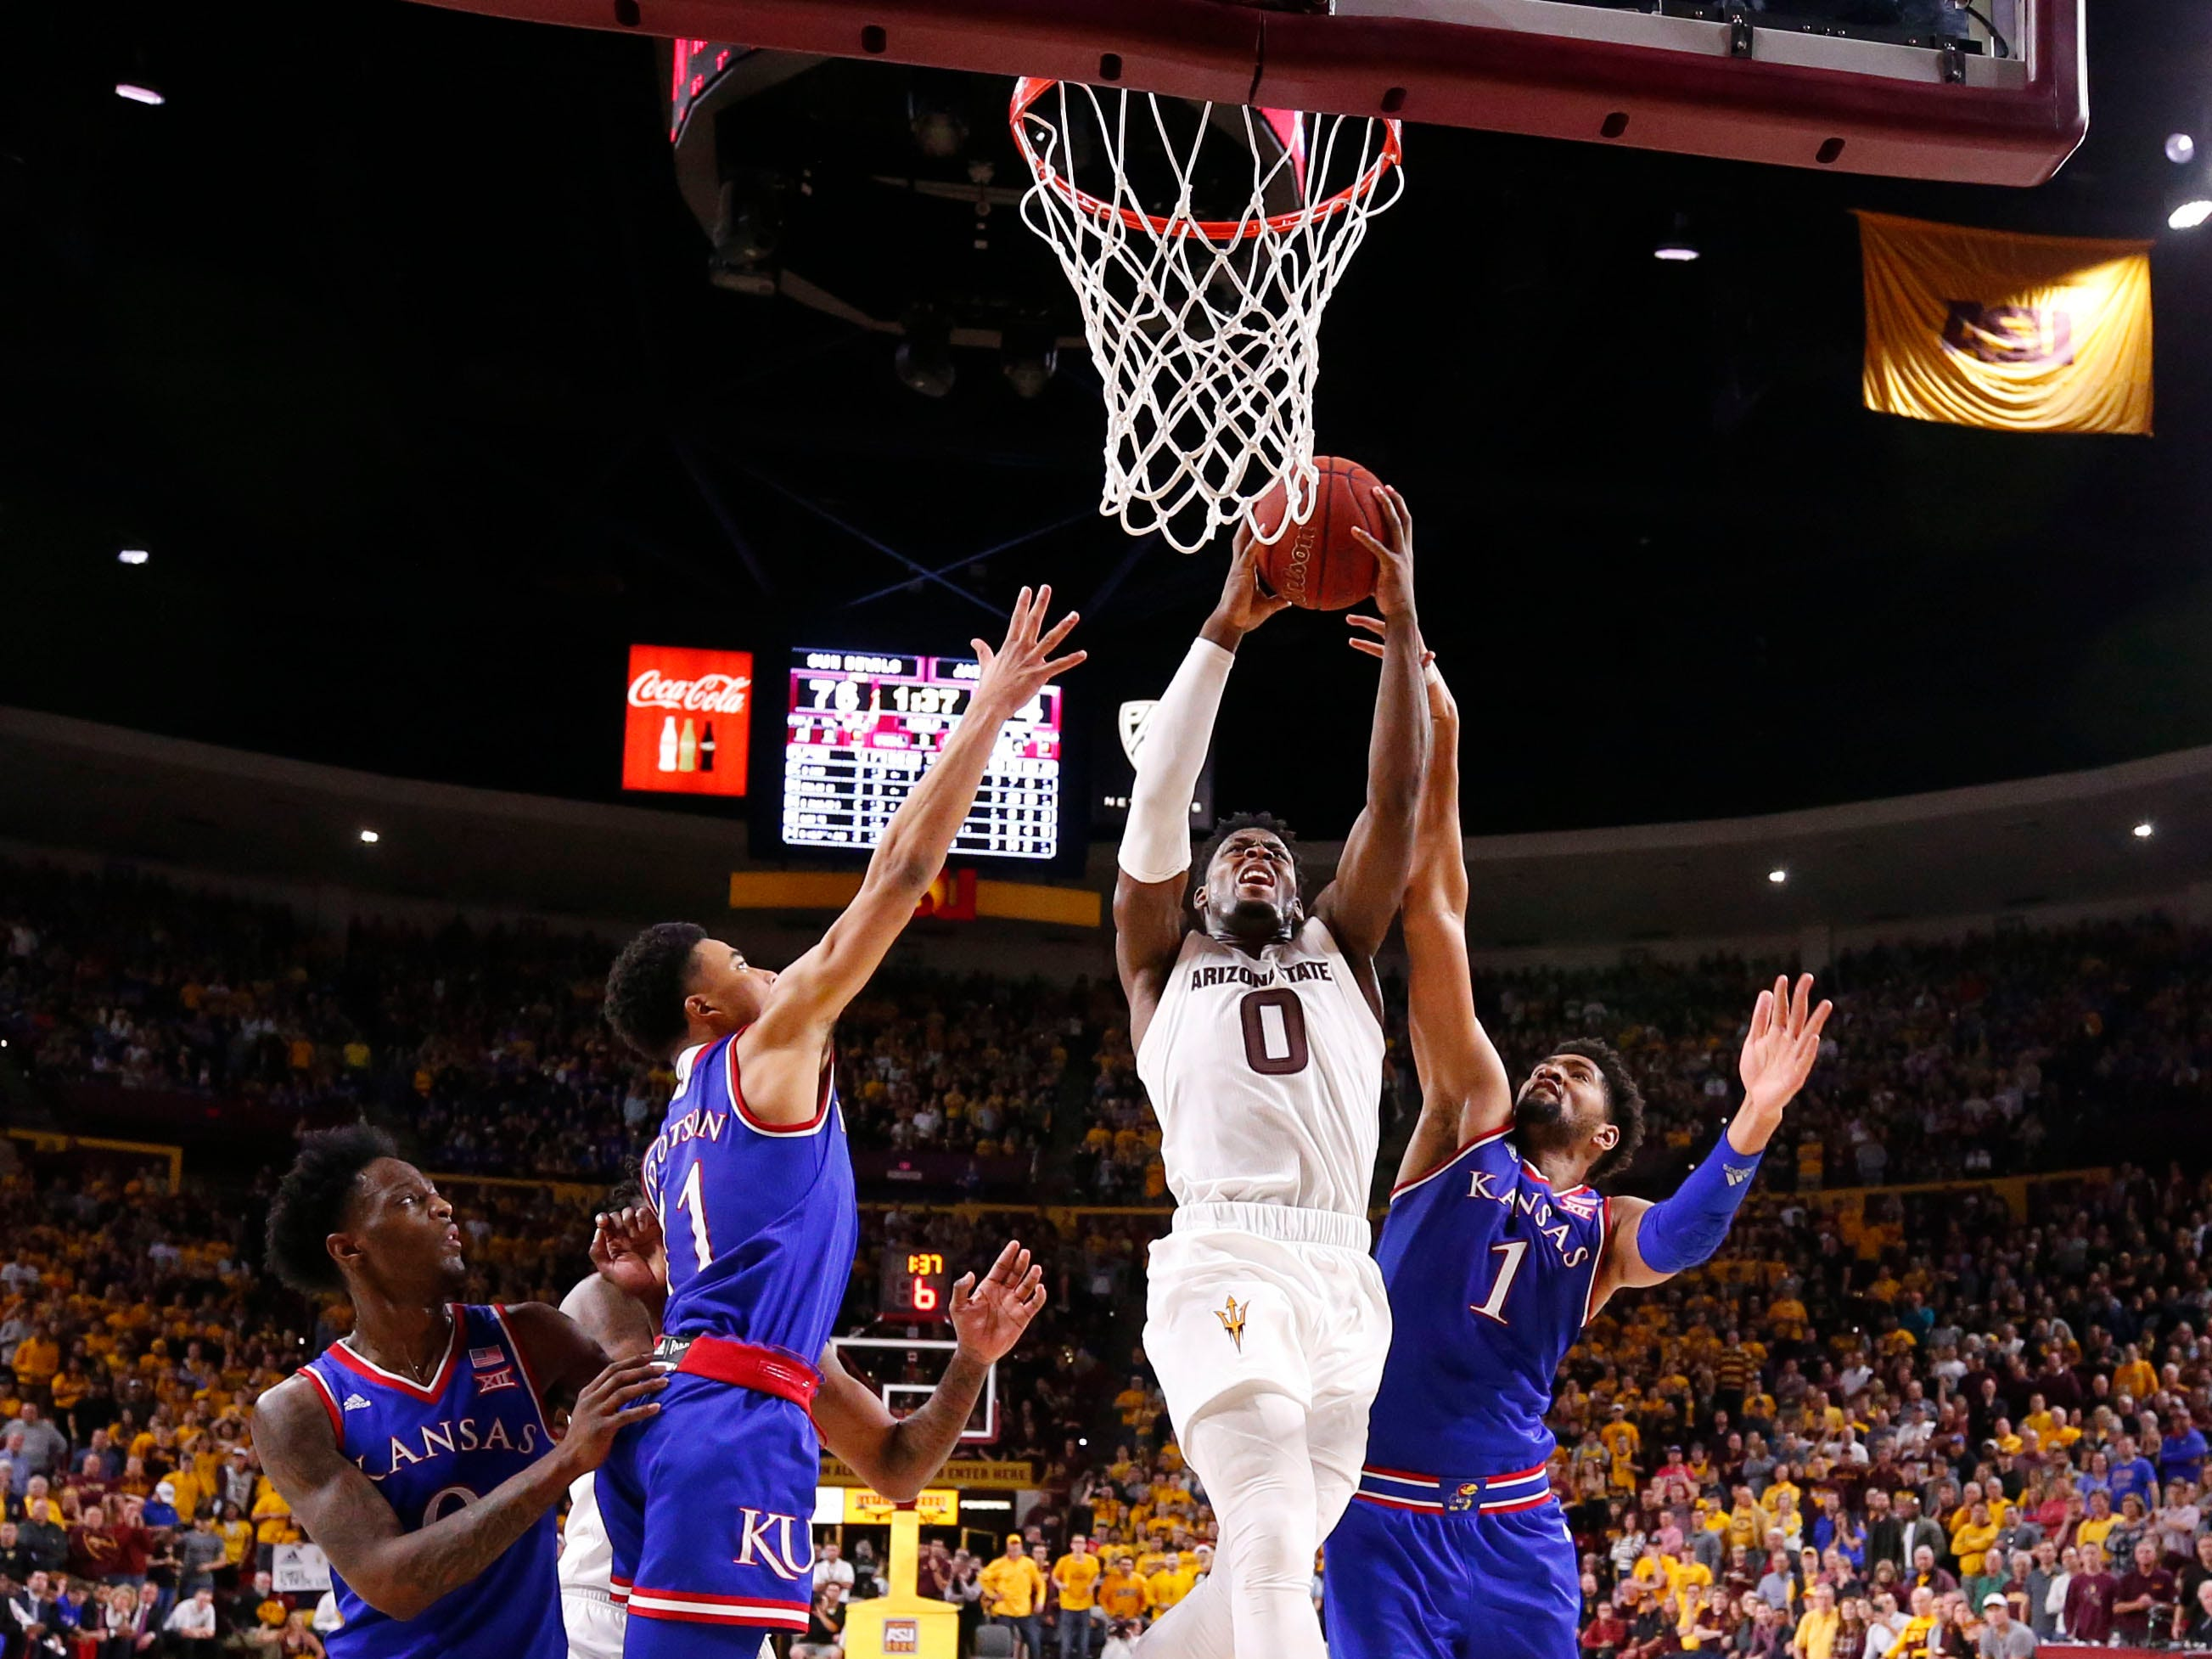 Arizona State guard Luguentz Dort drives to the basket against Kansas in the second half on Dec. 22 at Wells Fargo Arena.